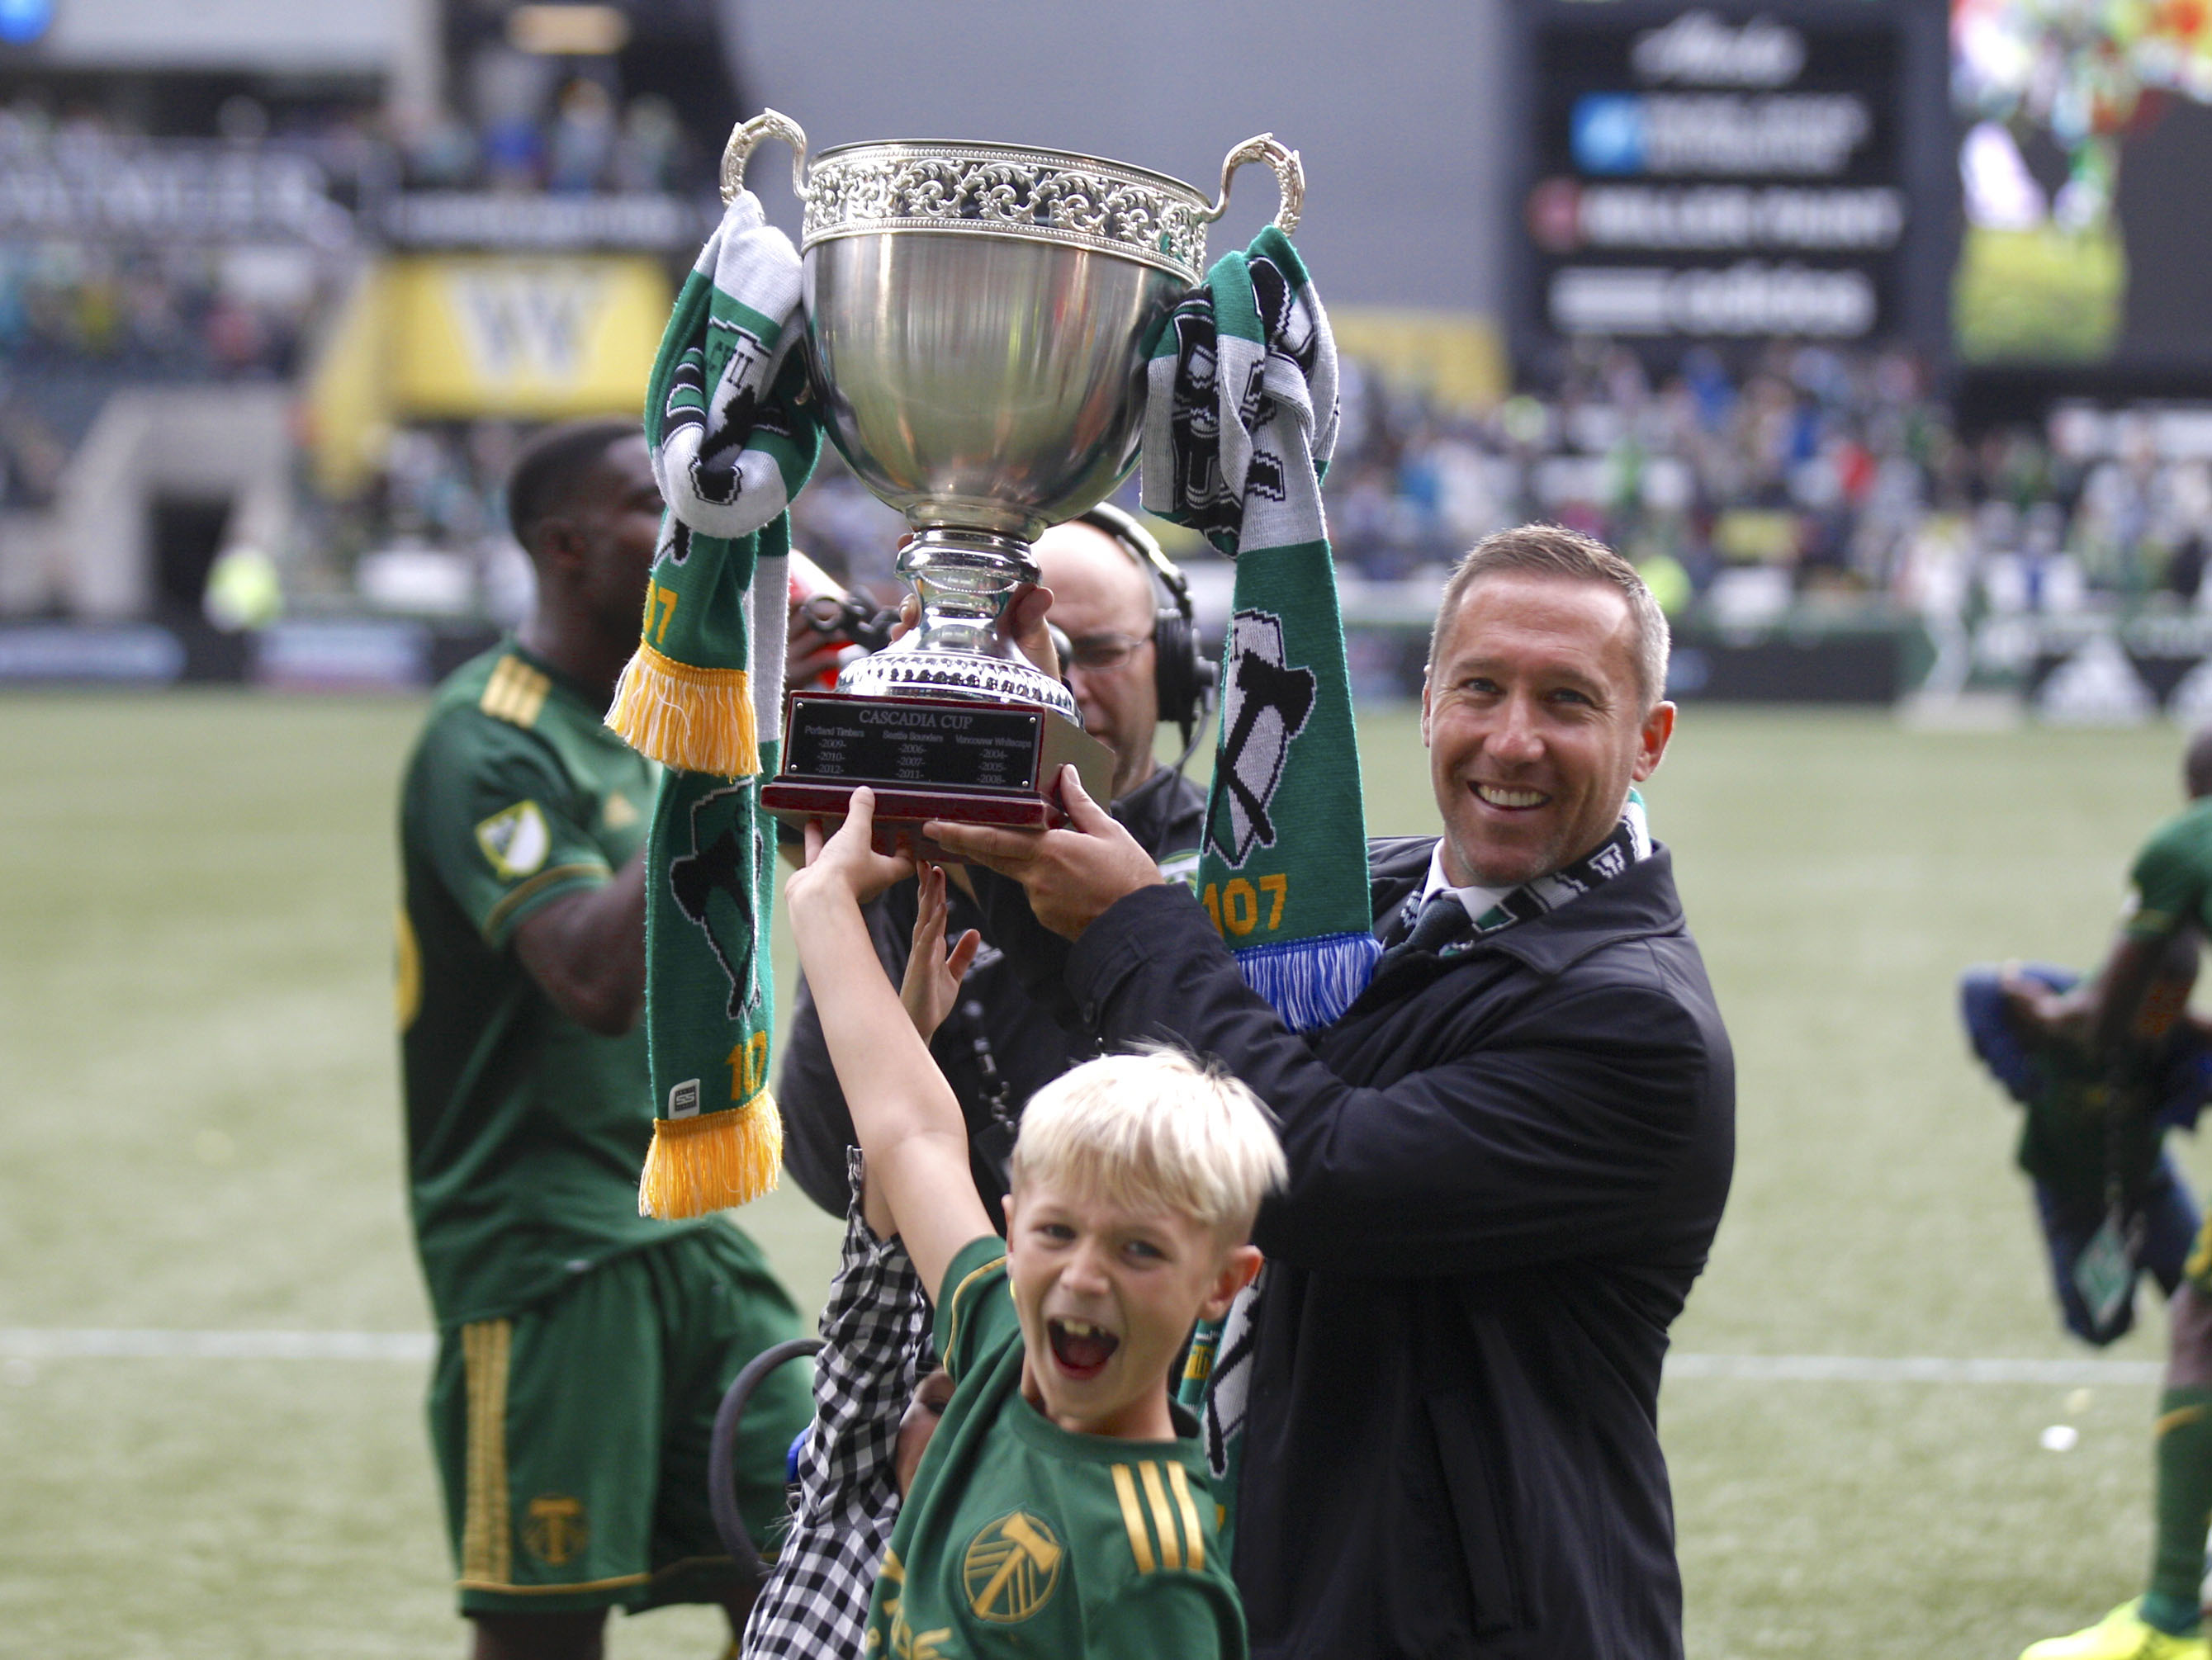 Portland Timbers coach Caleb Porter holds up the Cascadia Cup after the Timbers defeated the Vancouver Whitecaps in an MLS soccer match on Sunday in Portland, Ore. The Timbers won 2-1.